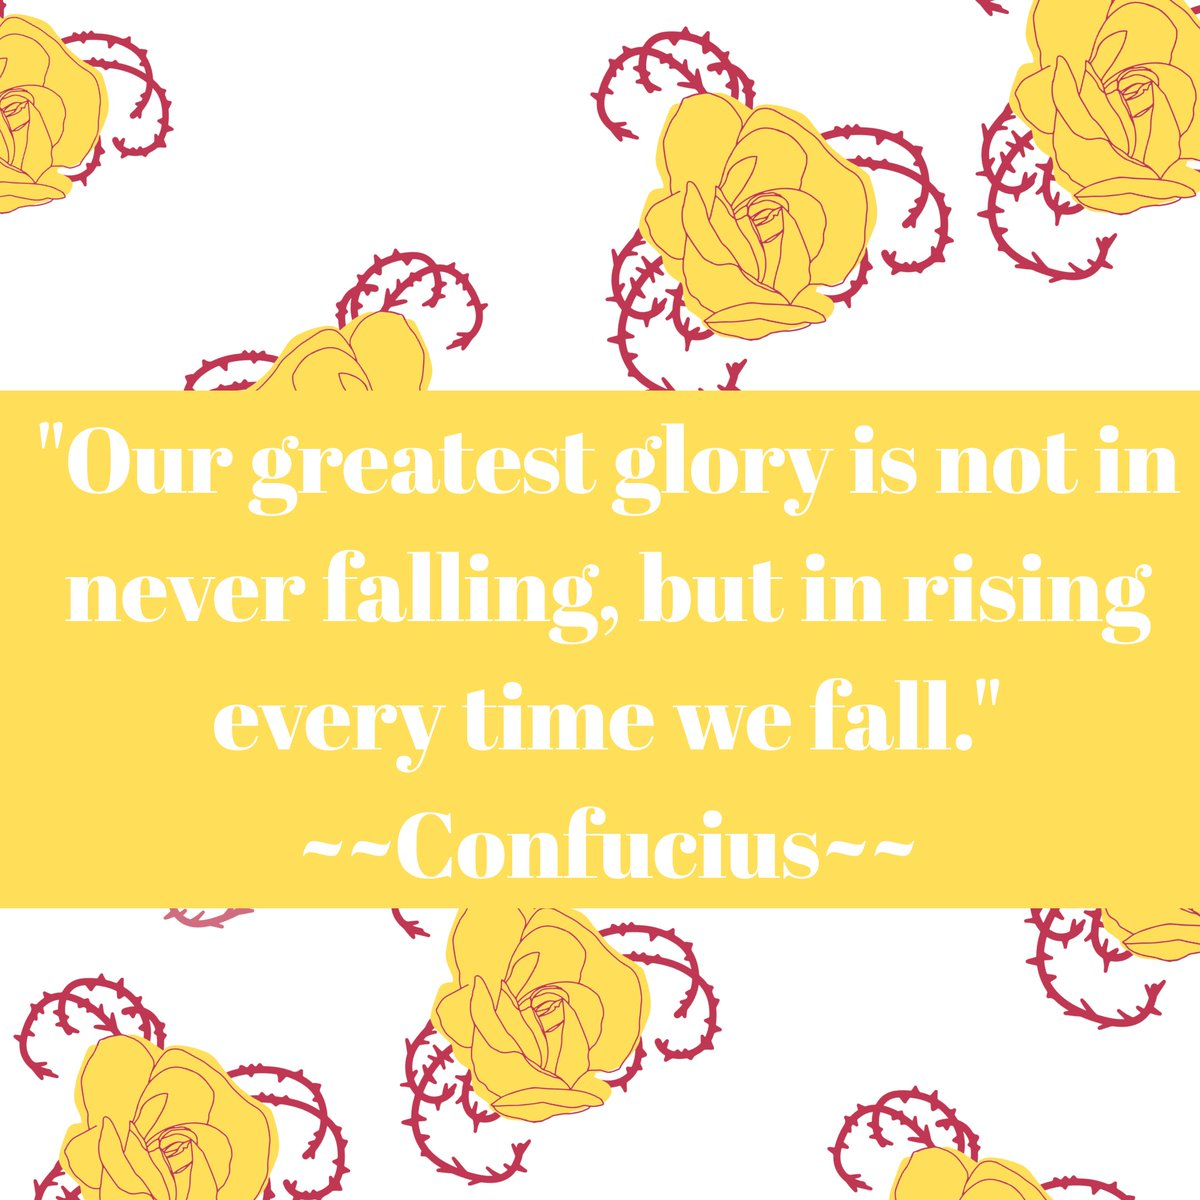 """""""Our greatest glory is not in never falling, but in rising every time we fall."""" ~~ Confucius~~ #ThursdayThoughts #MondayMotivaton #IKnowItsNotMonday #Smile😊 https://t.co/JNypScYfNp"""